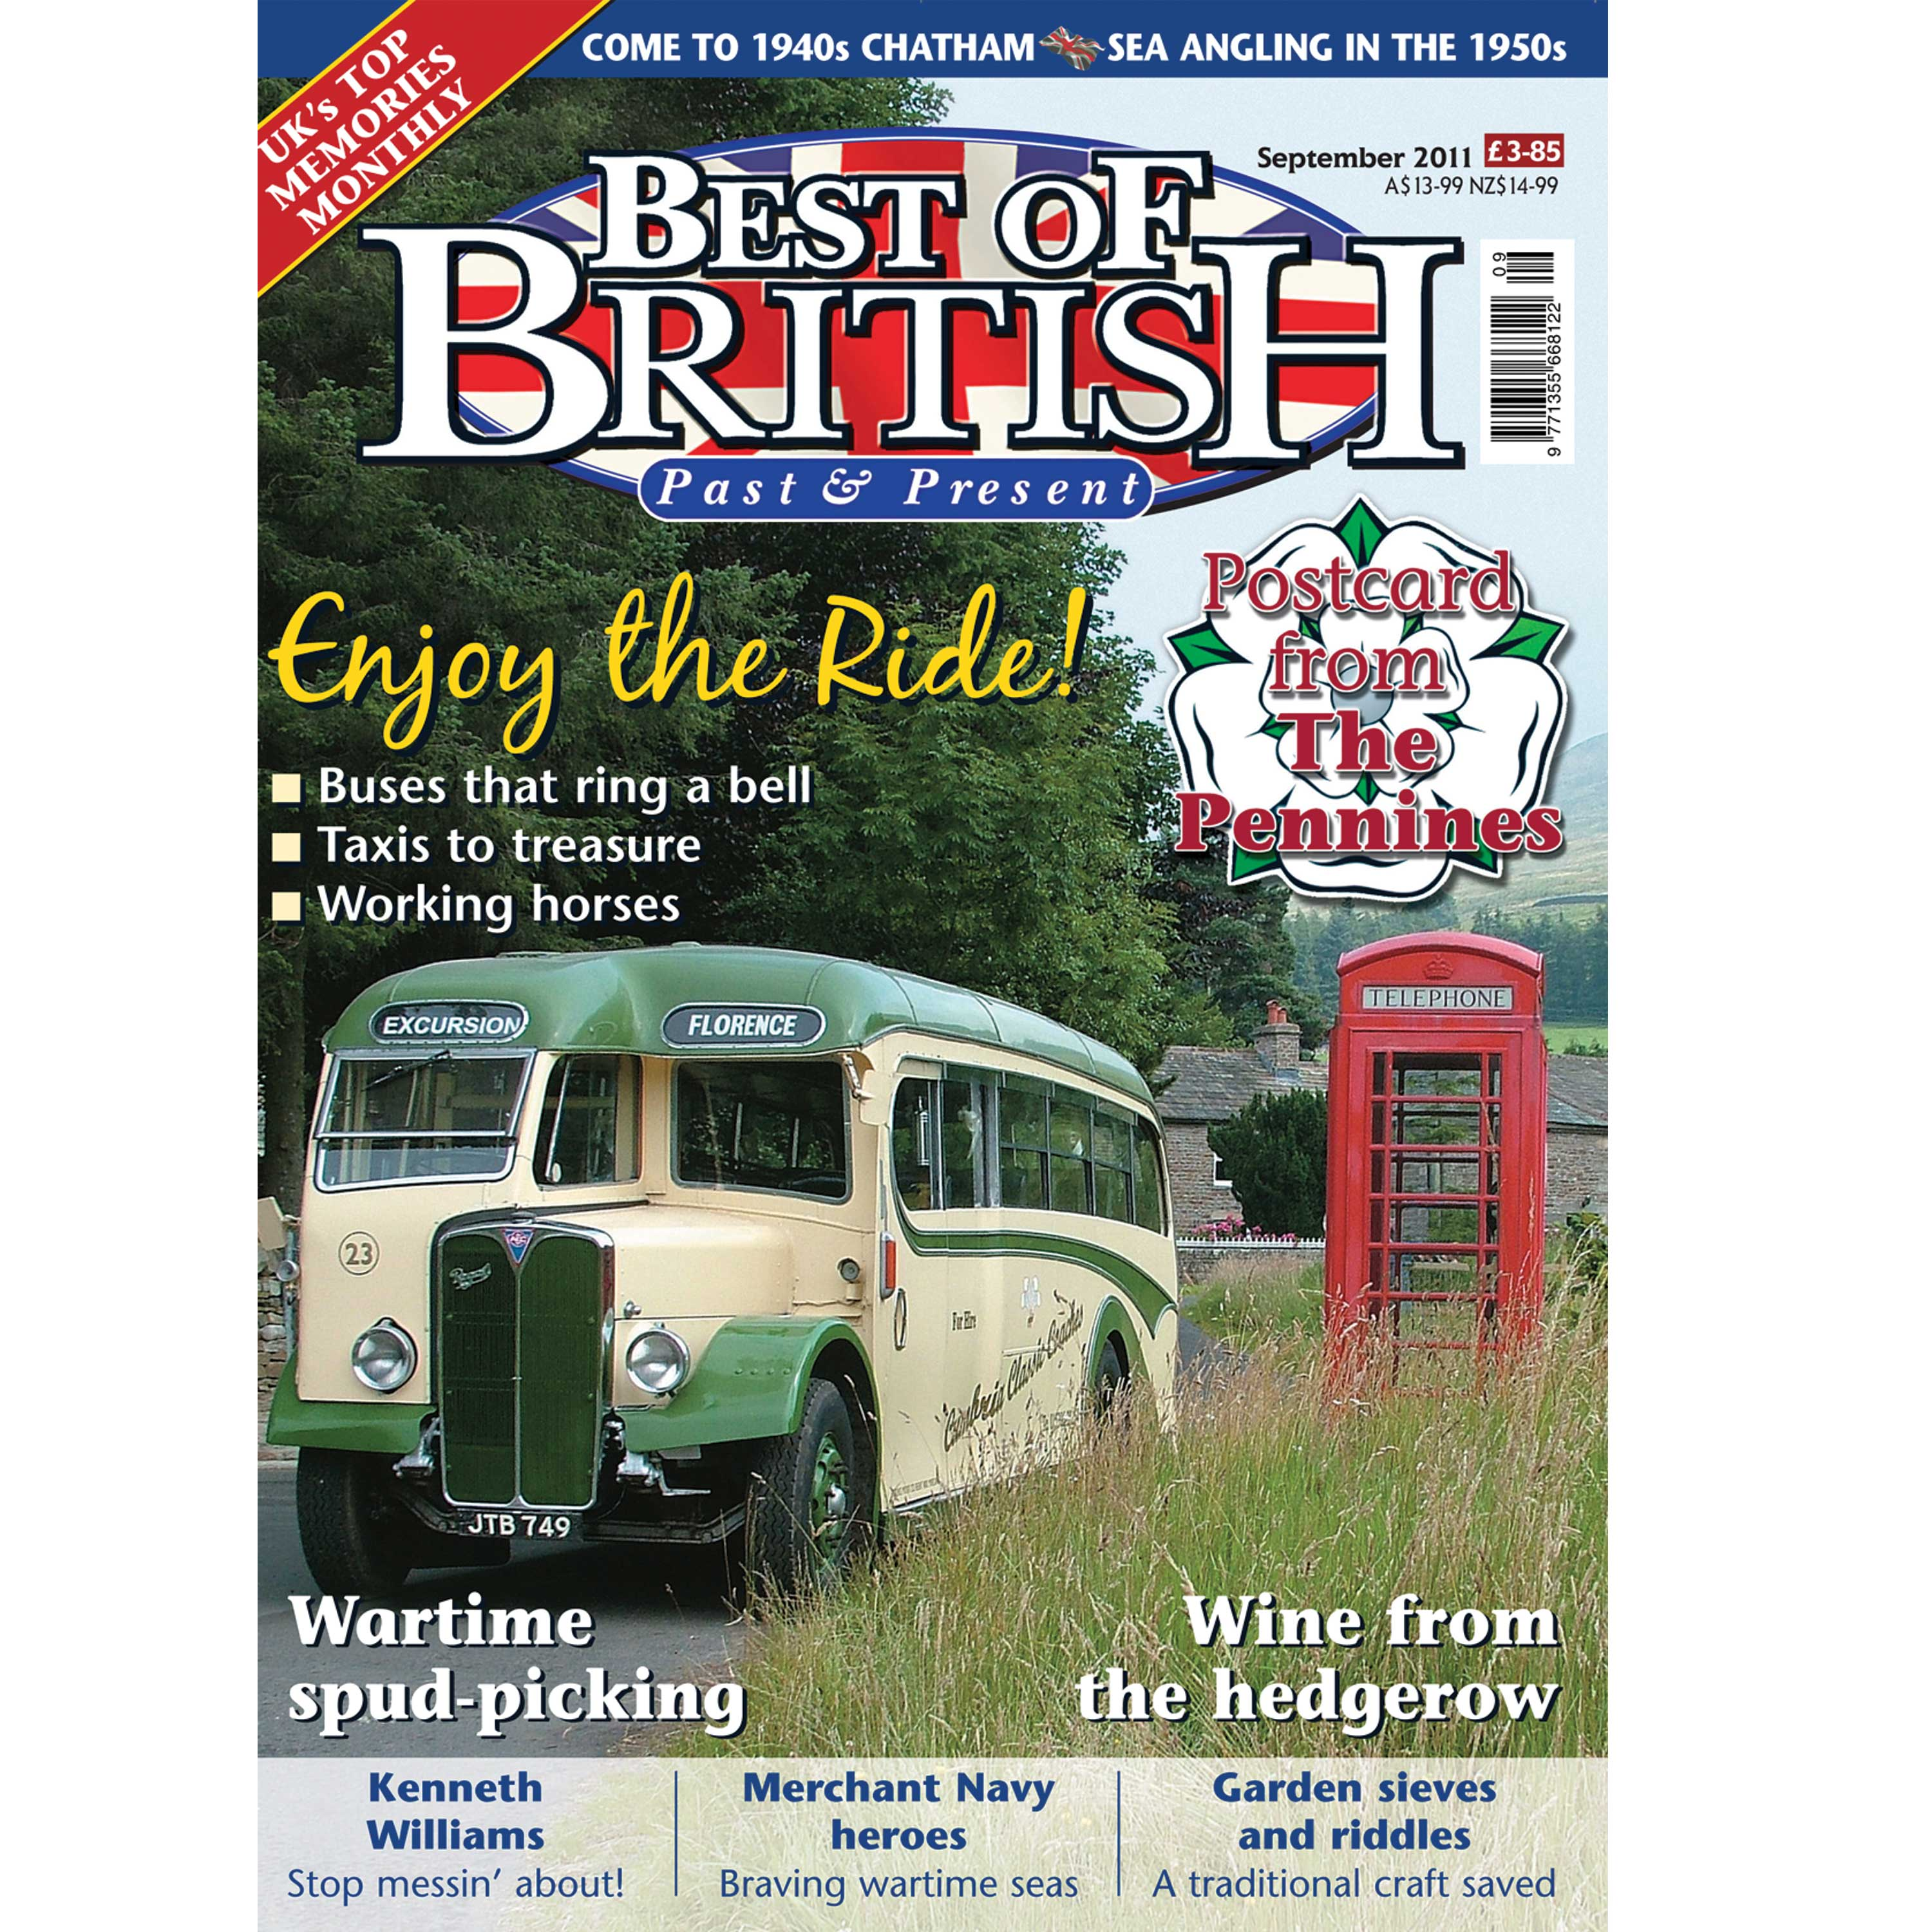 Issue 182 - SEPT 2011